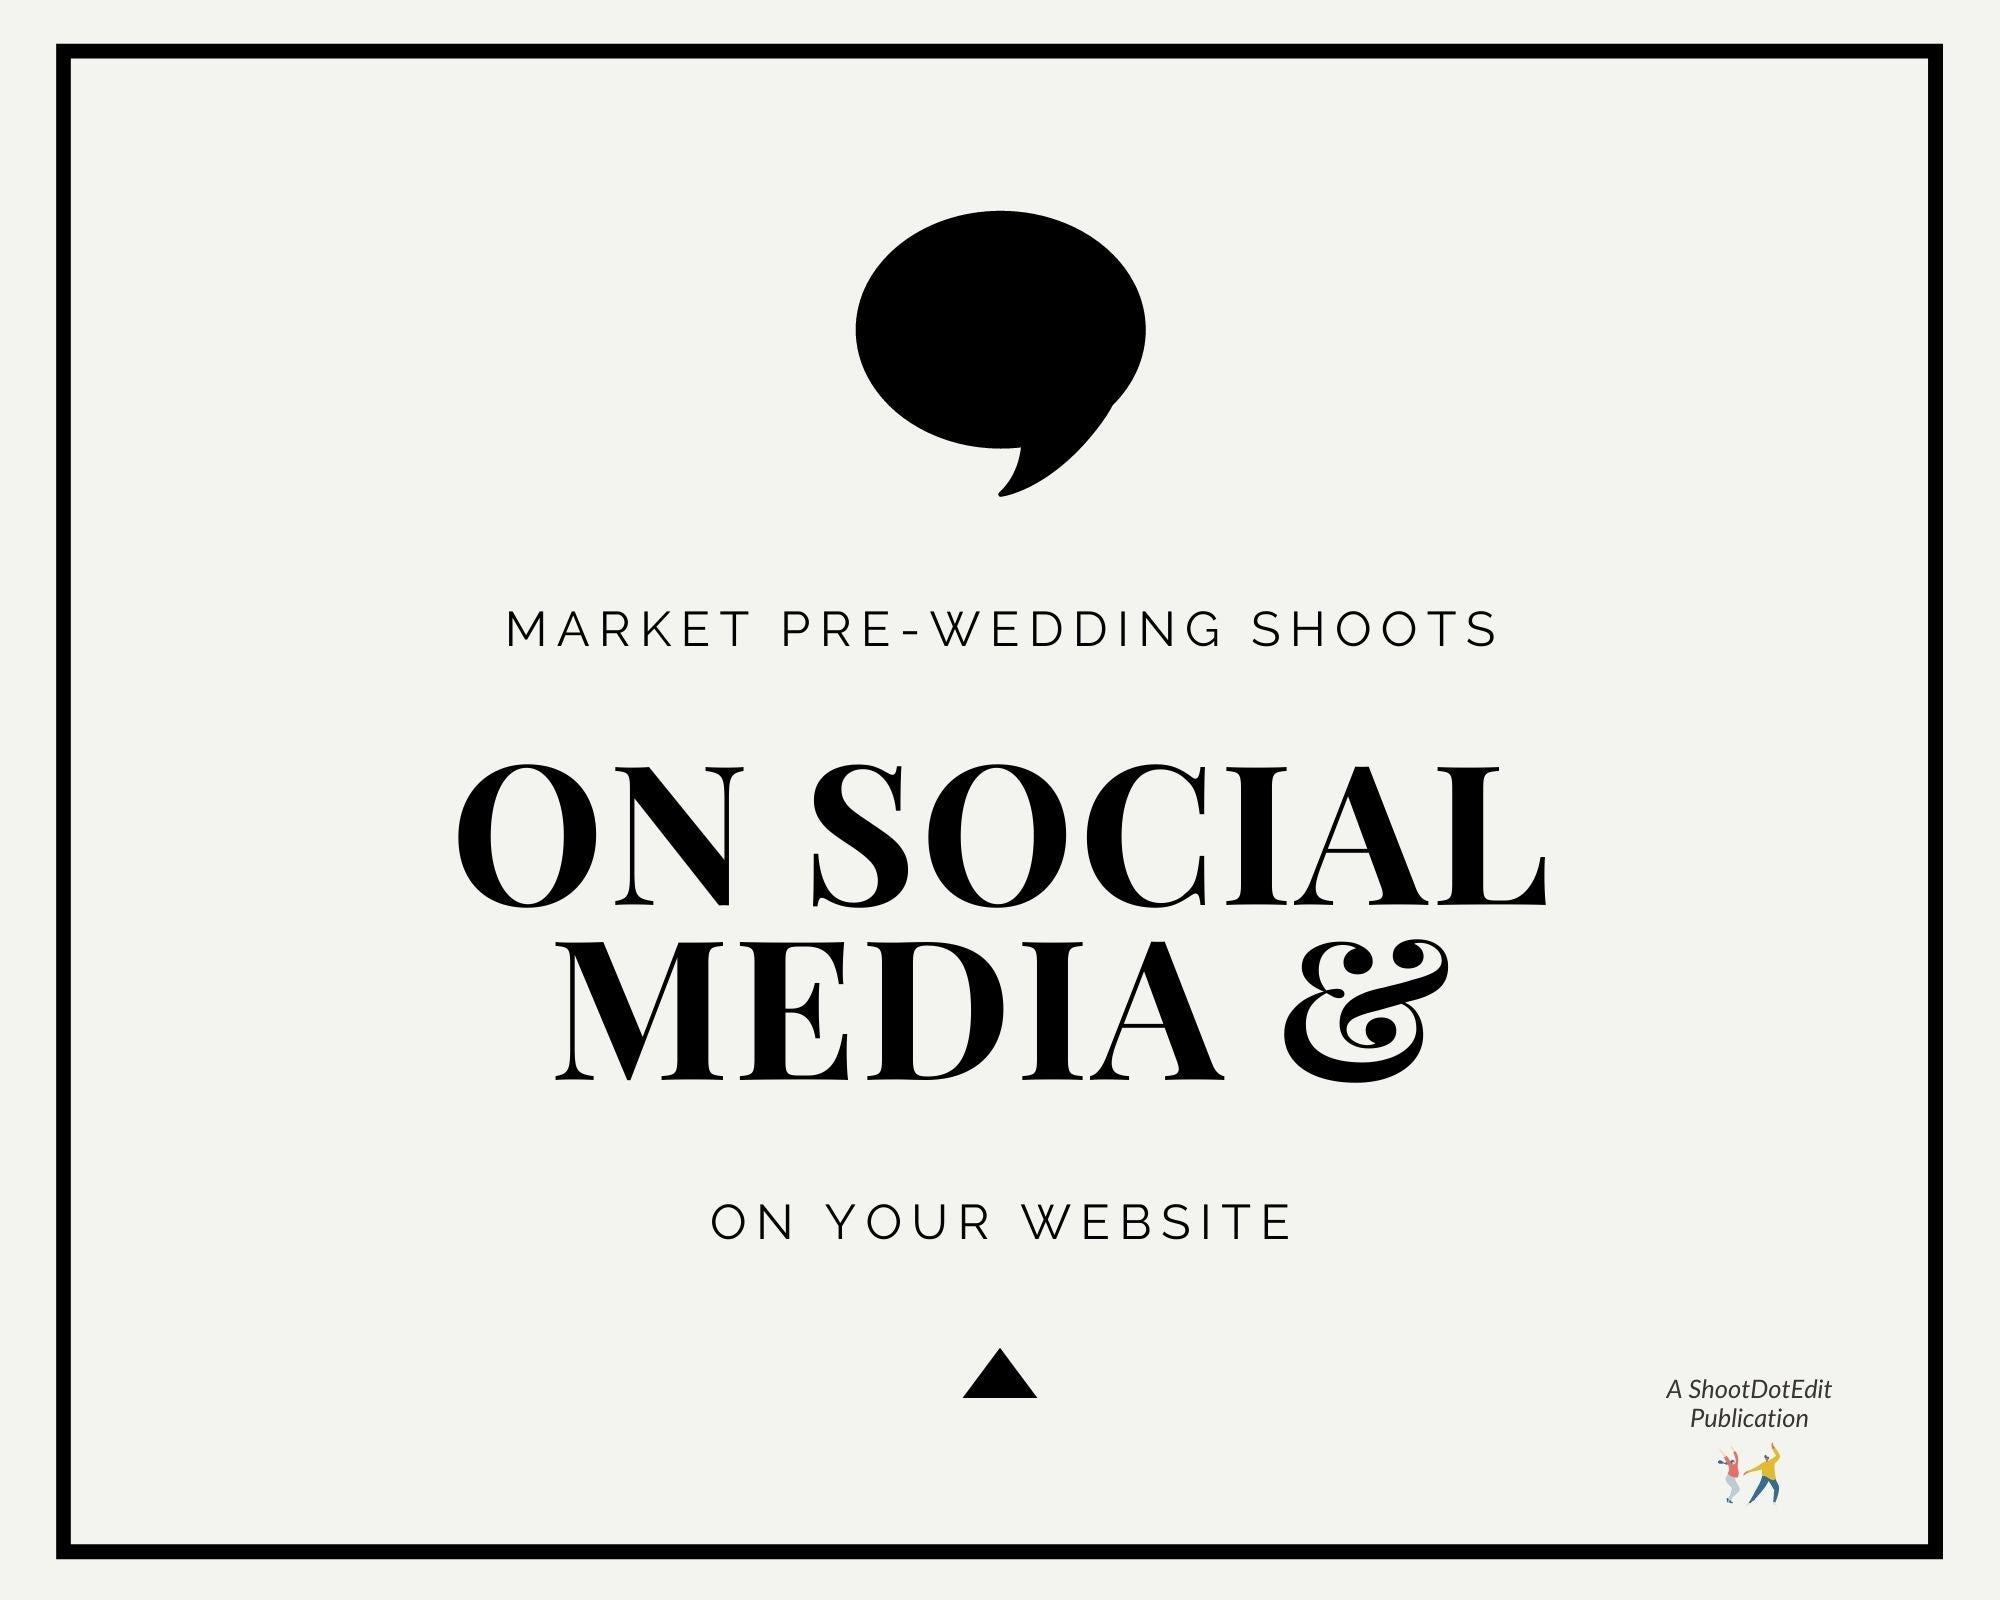 Infographic stating market these sessions on social media and on your website